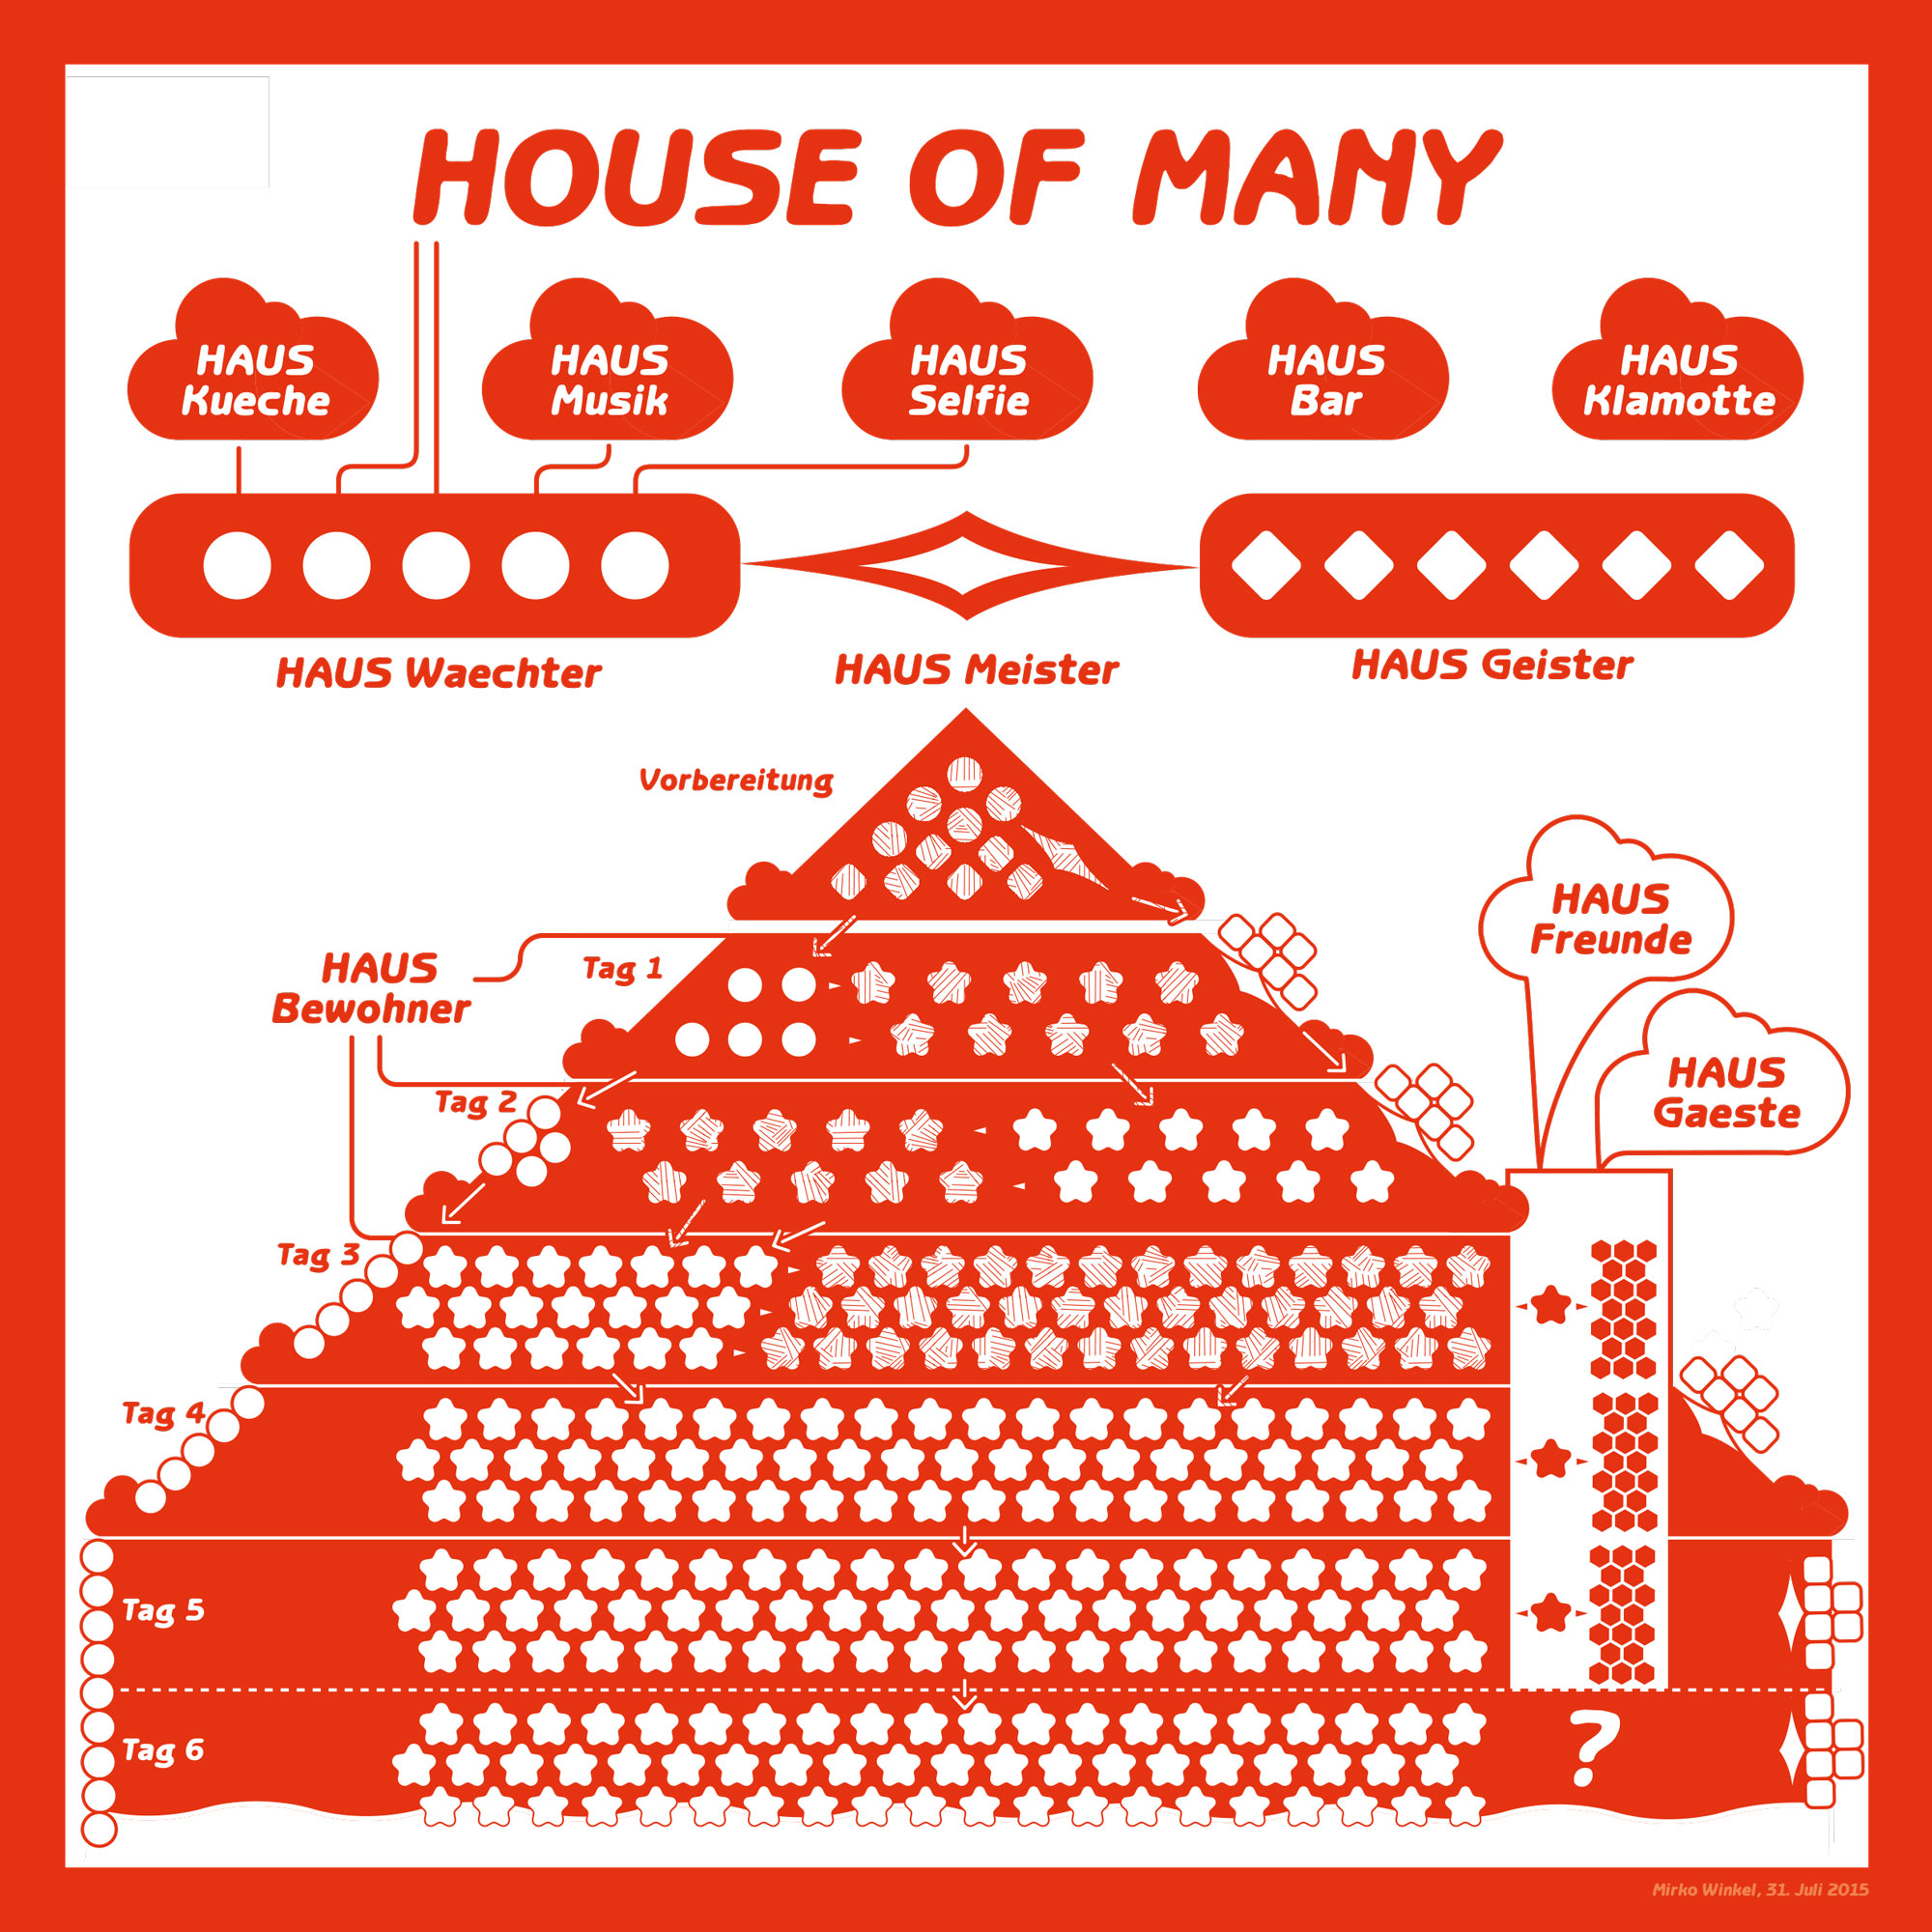 HKW | House of Many